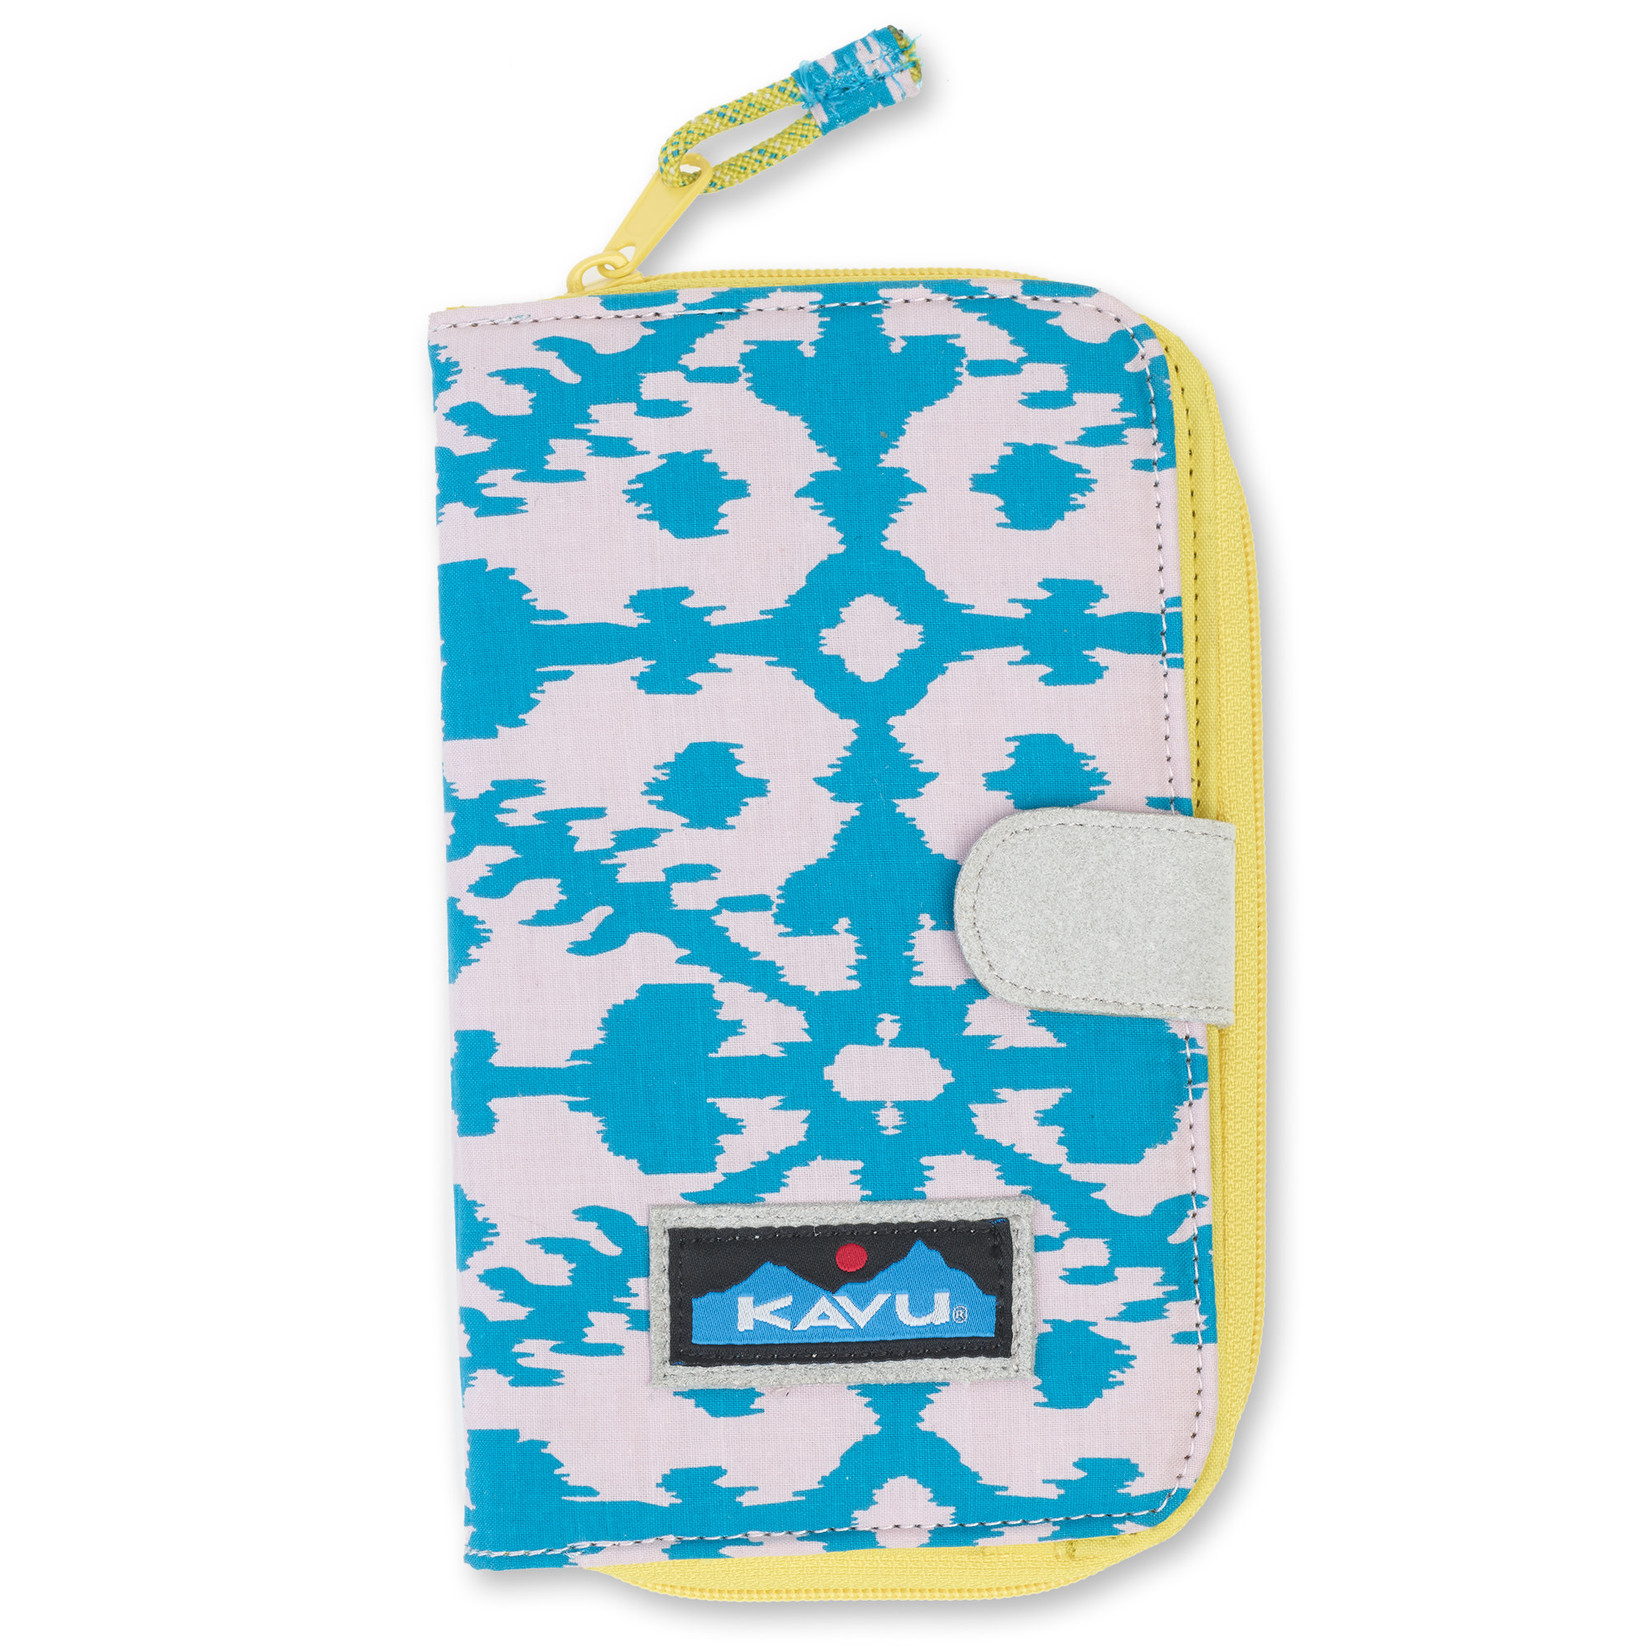 Kavu Darla Zip - Cool Blot